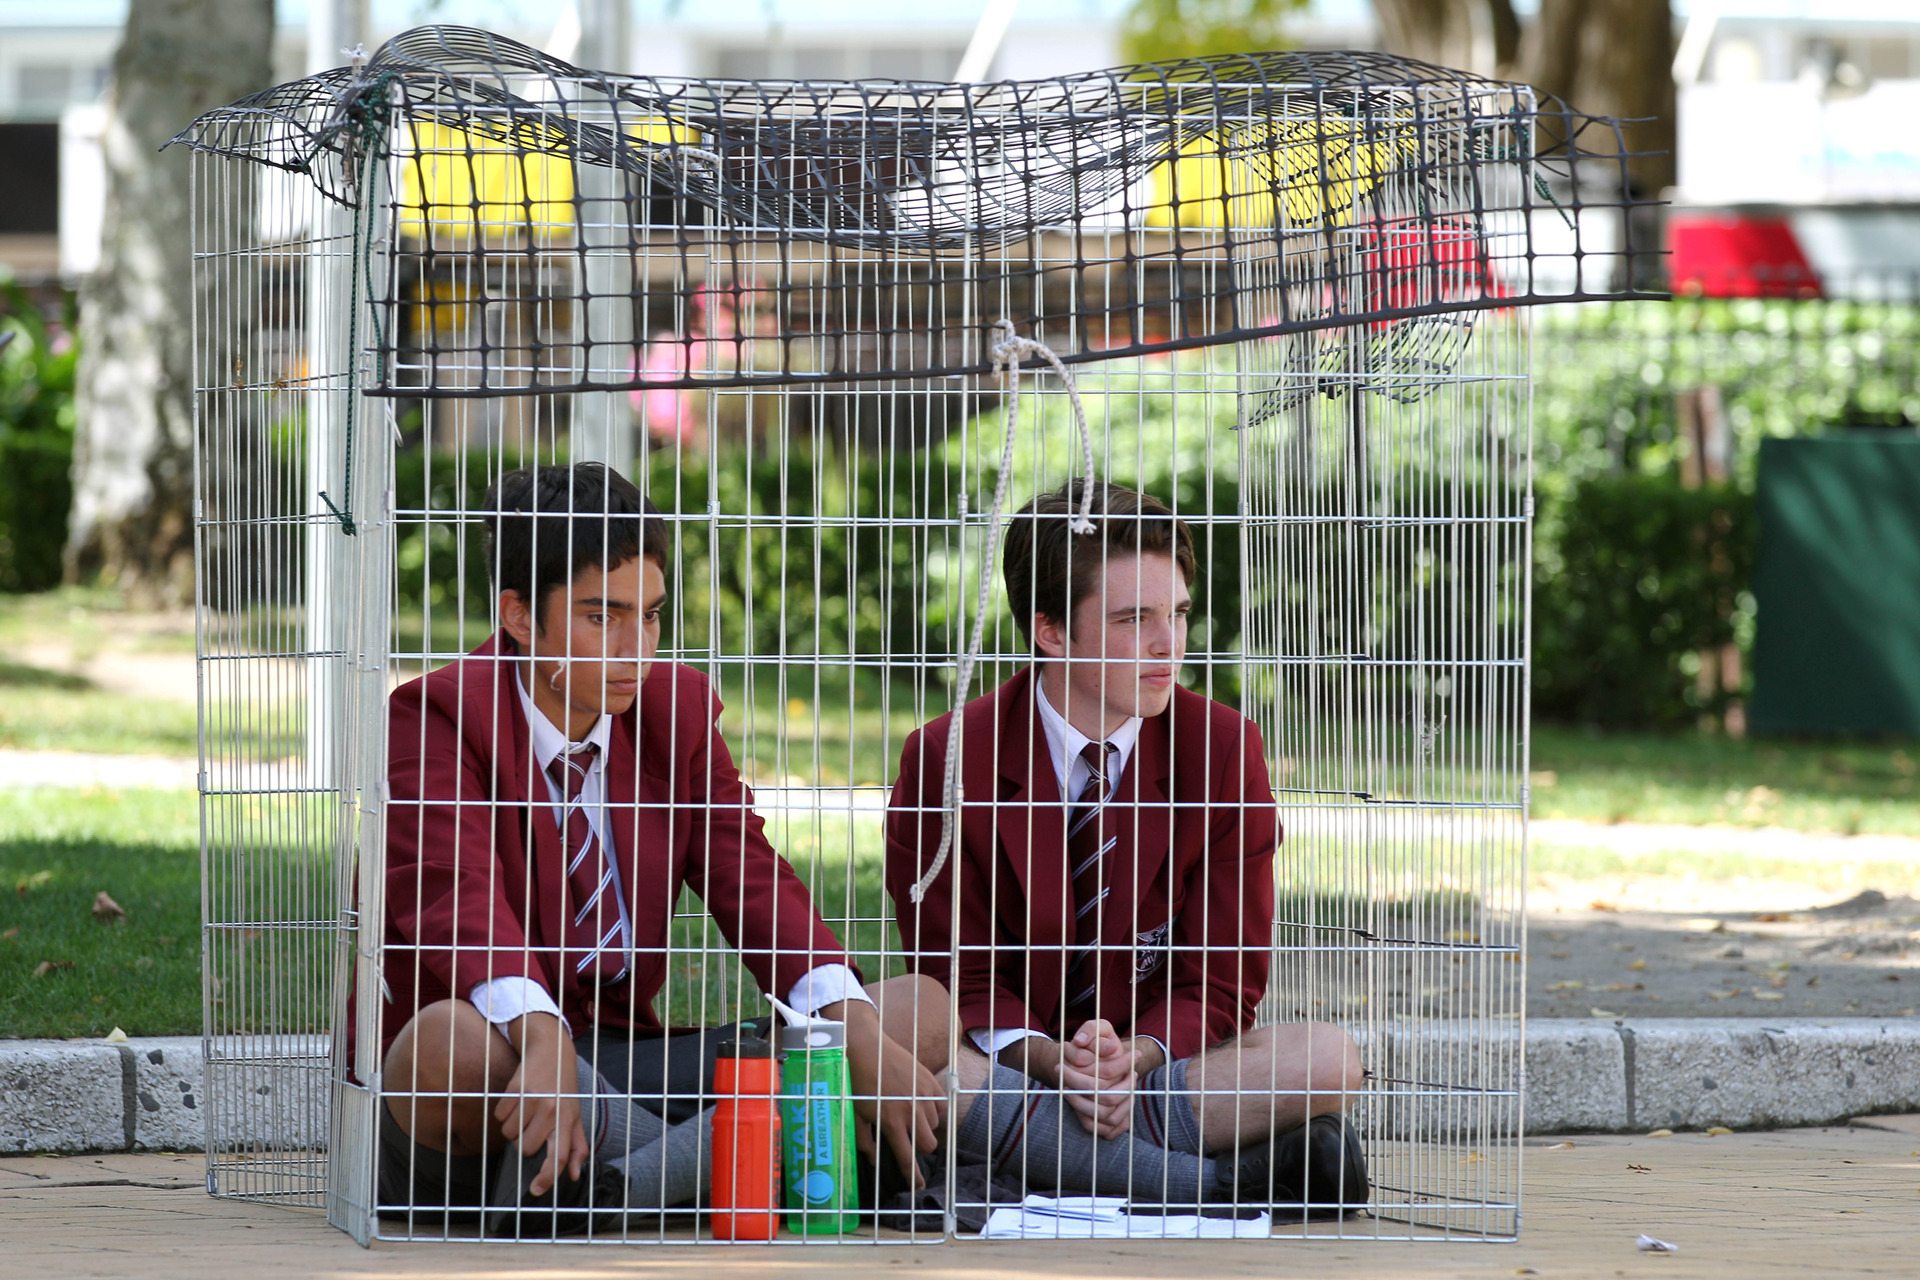 St John's College boys lock themselves in cage at Hastings clocktower in protest at prisoner conditions